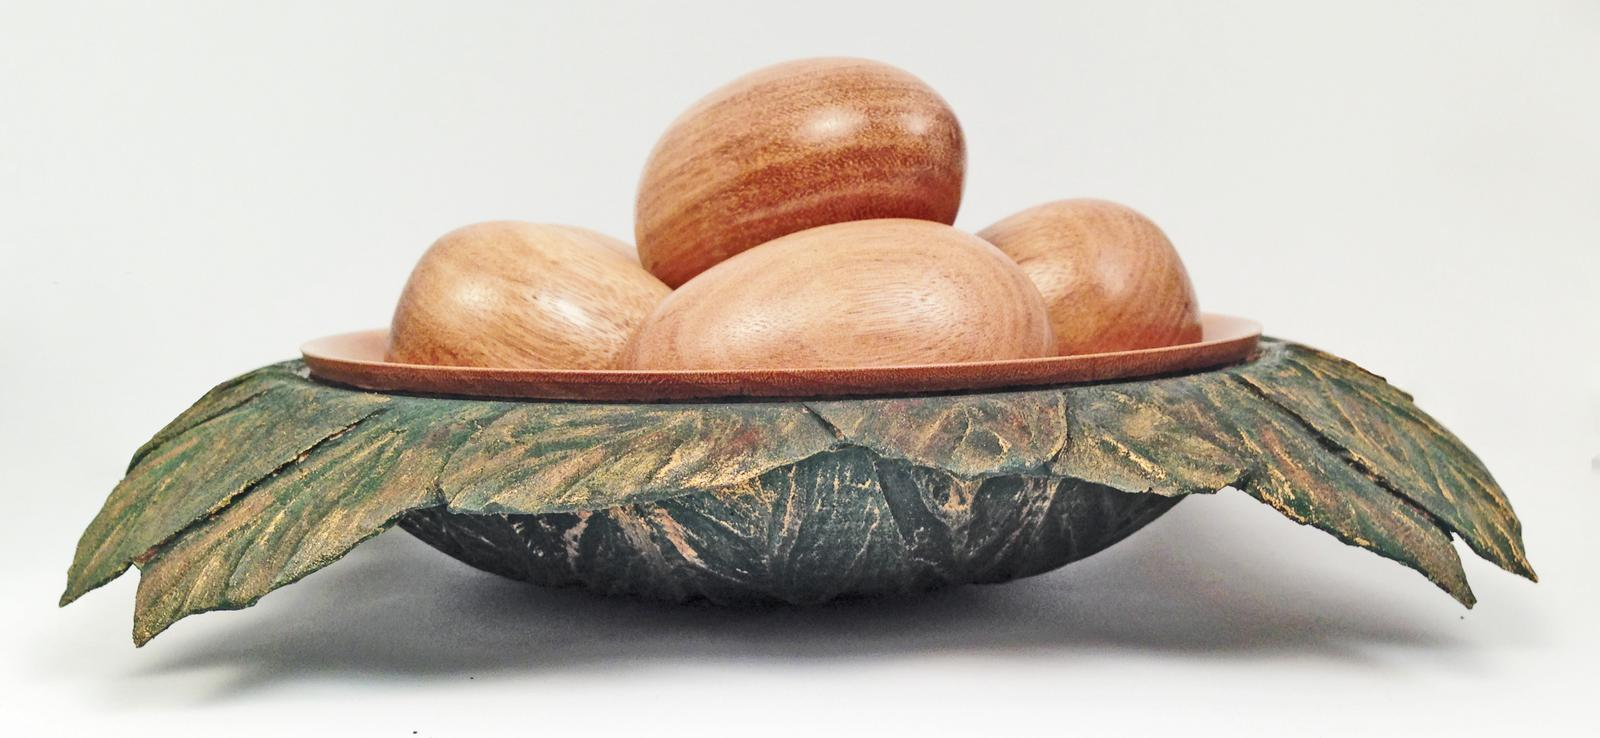 Bowl with eggs in Leaves